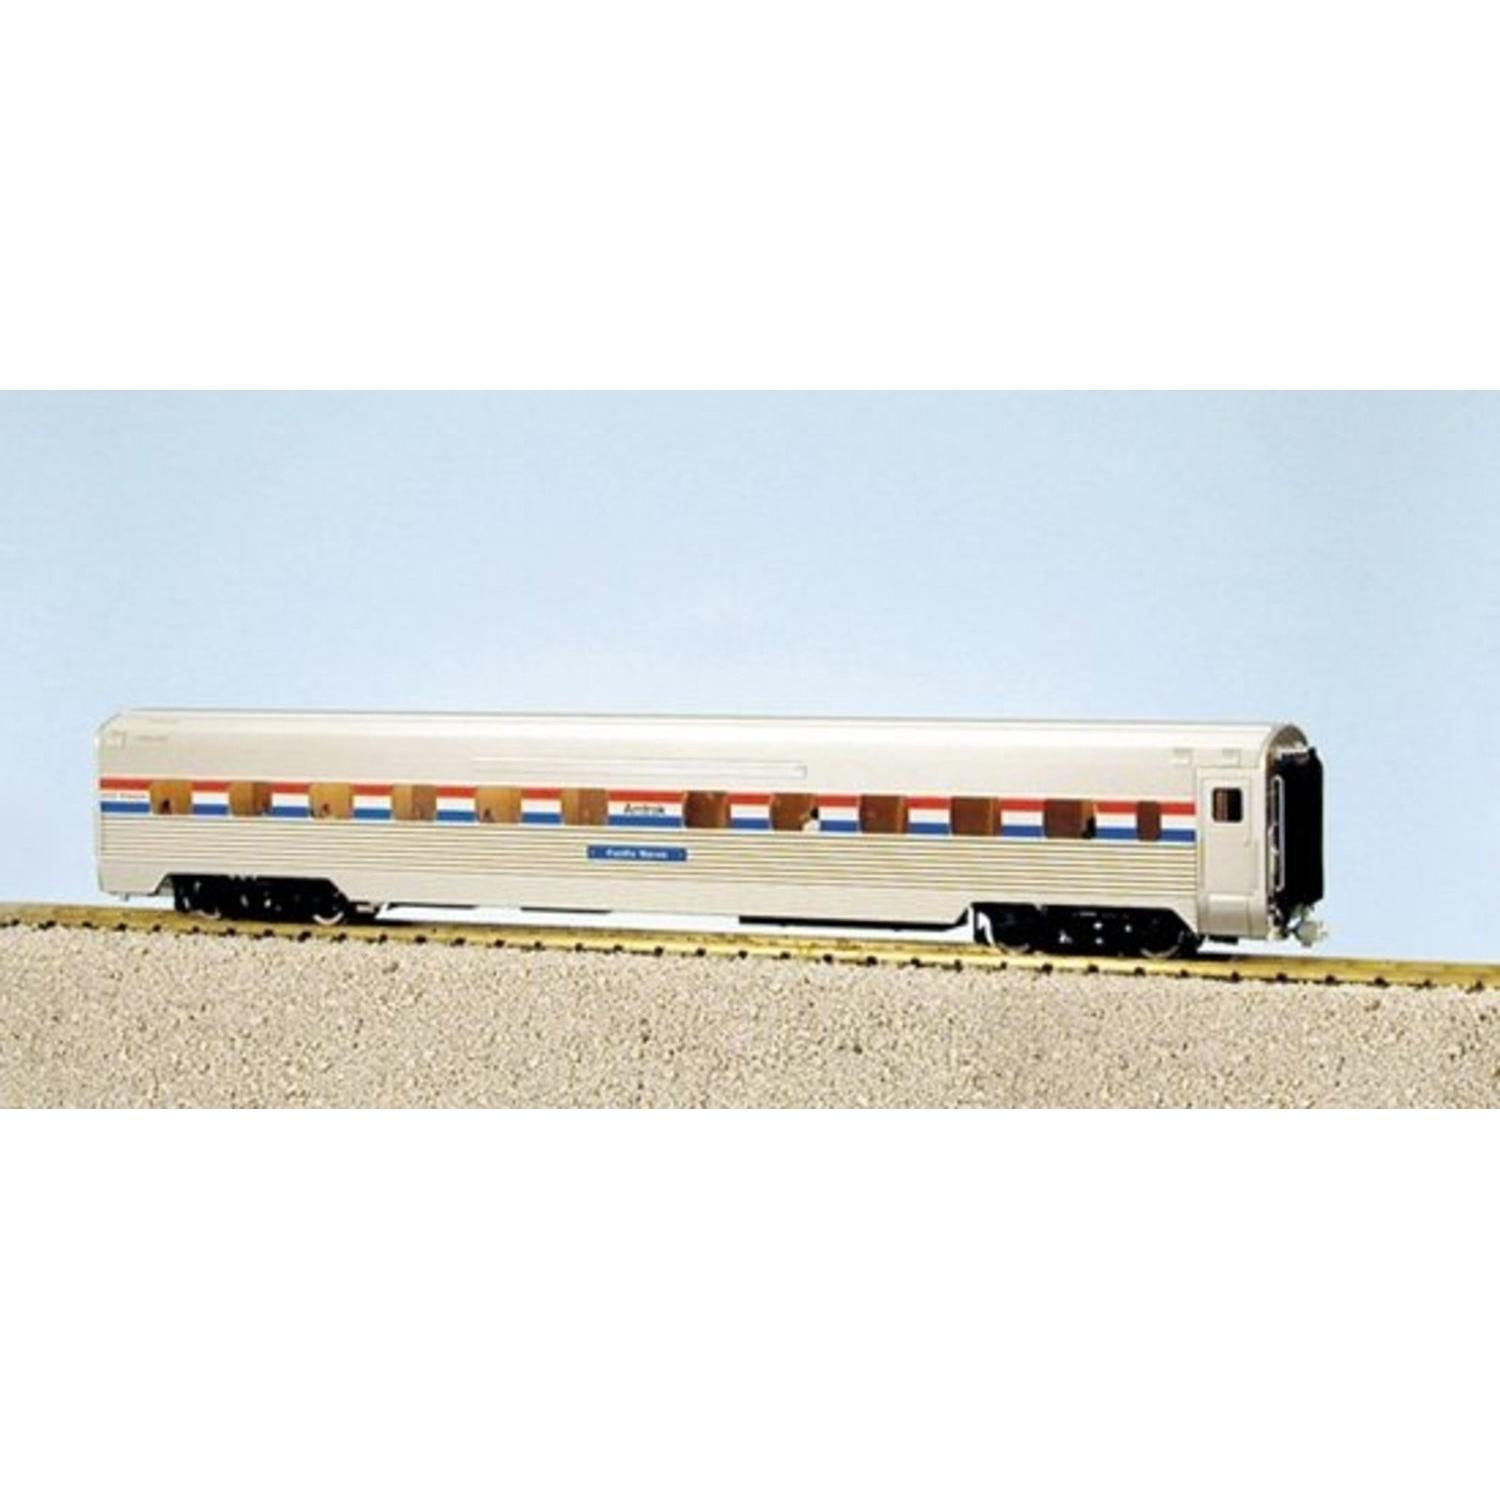 G Corrugated Aluminum Sleeper Lighted Amtrak #1